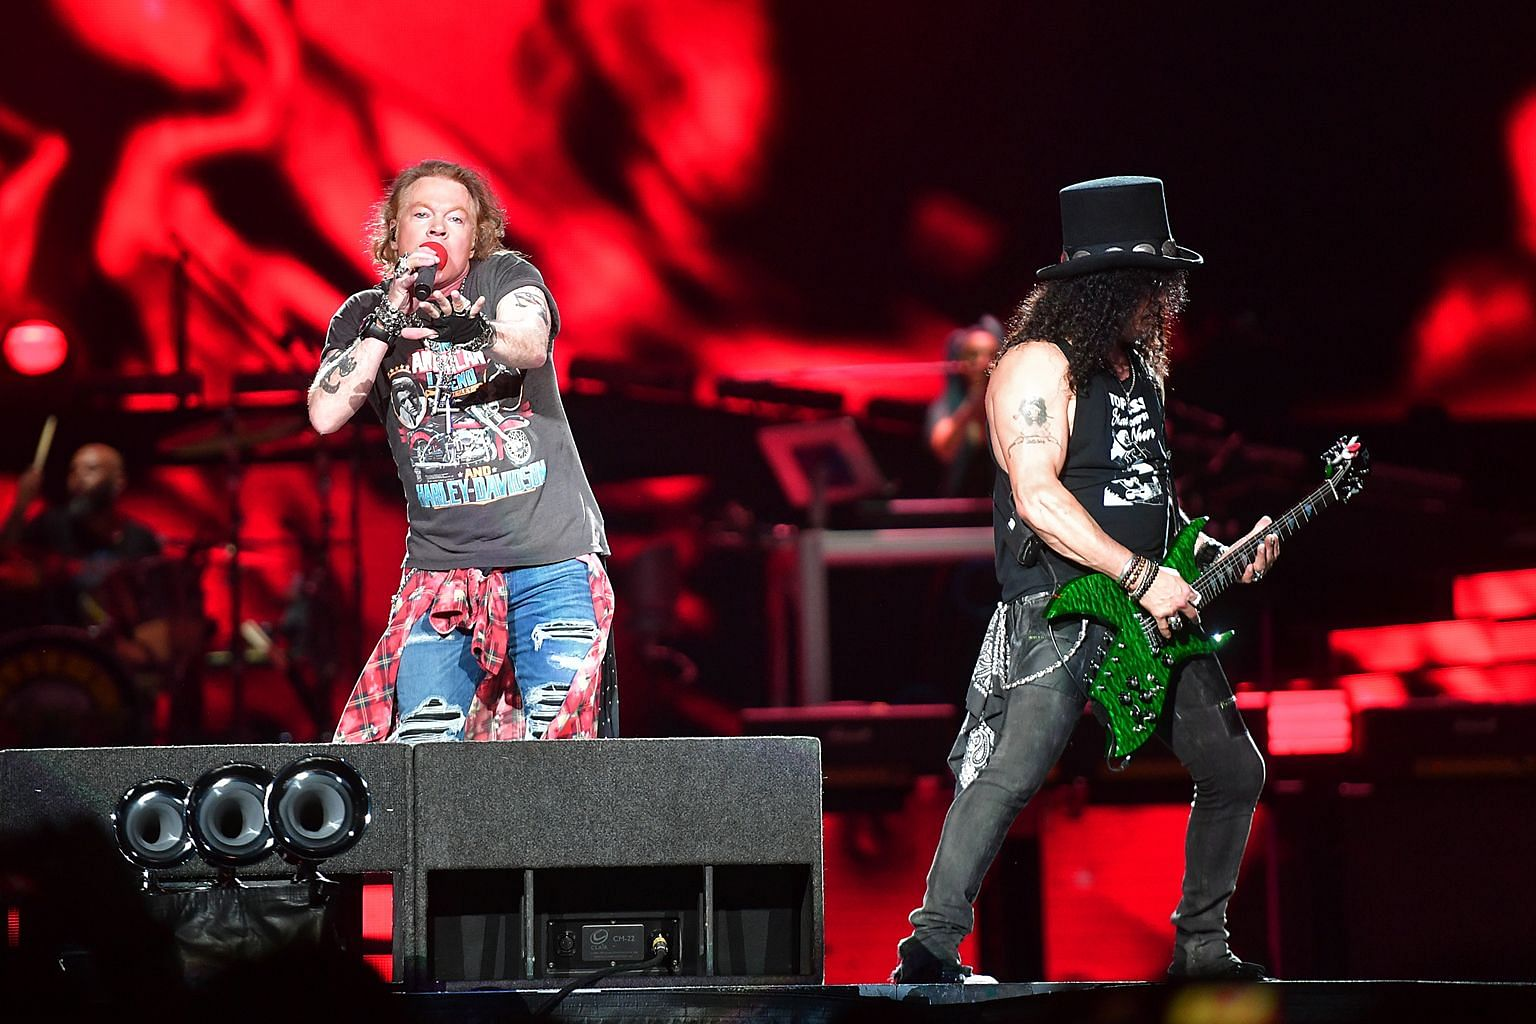 Guns N' Roses' frontman Axl Rose and guitarist Slash (both above) heating up the stage.